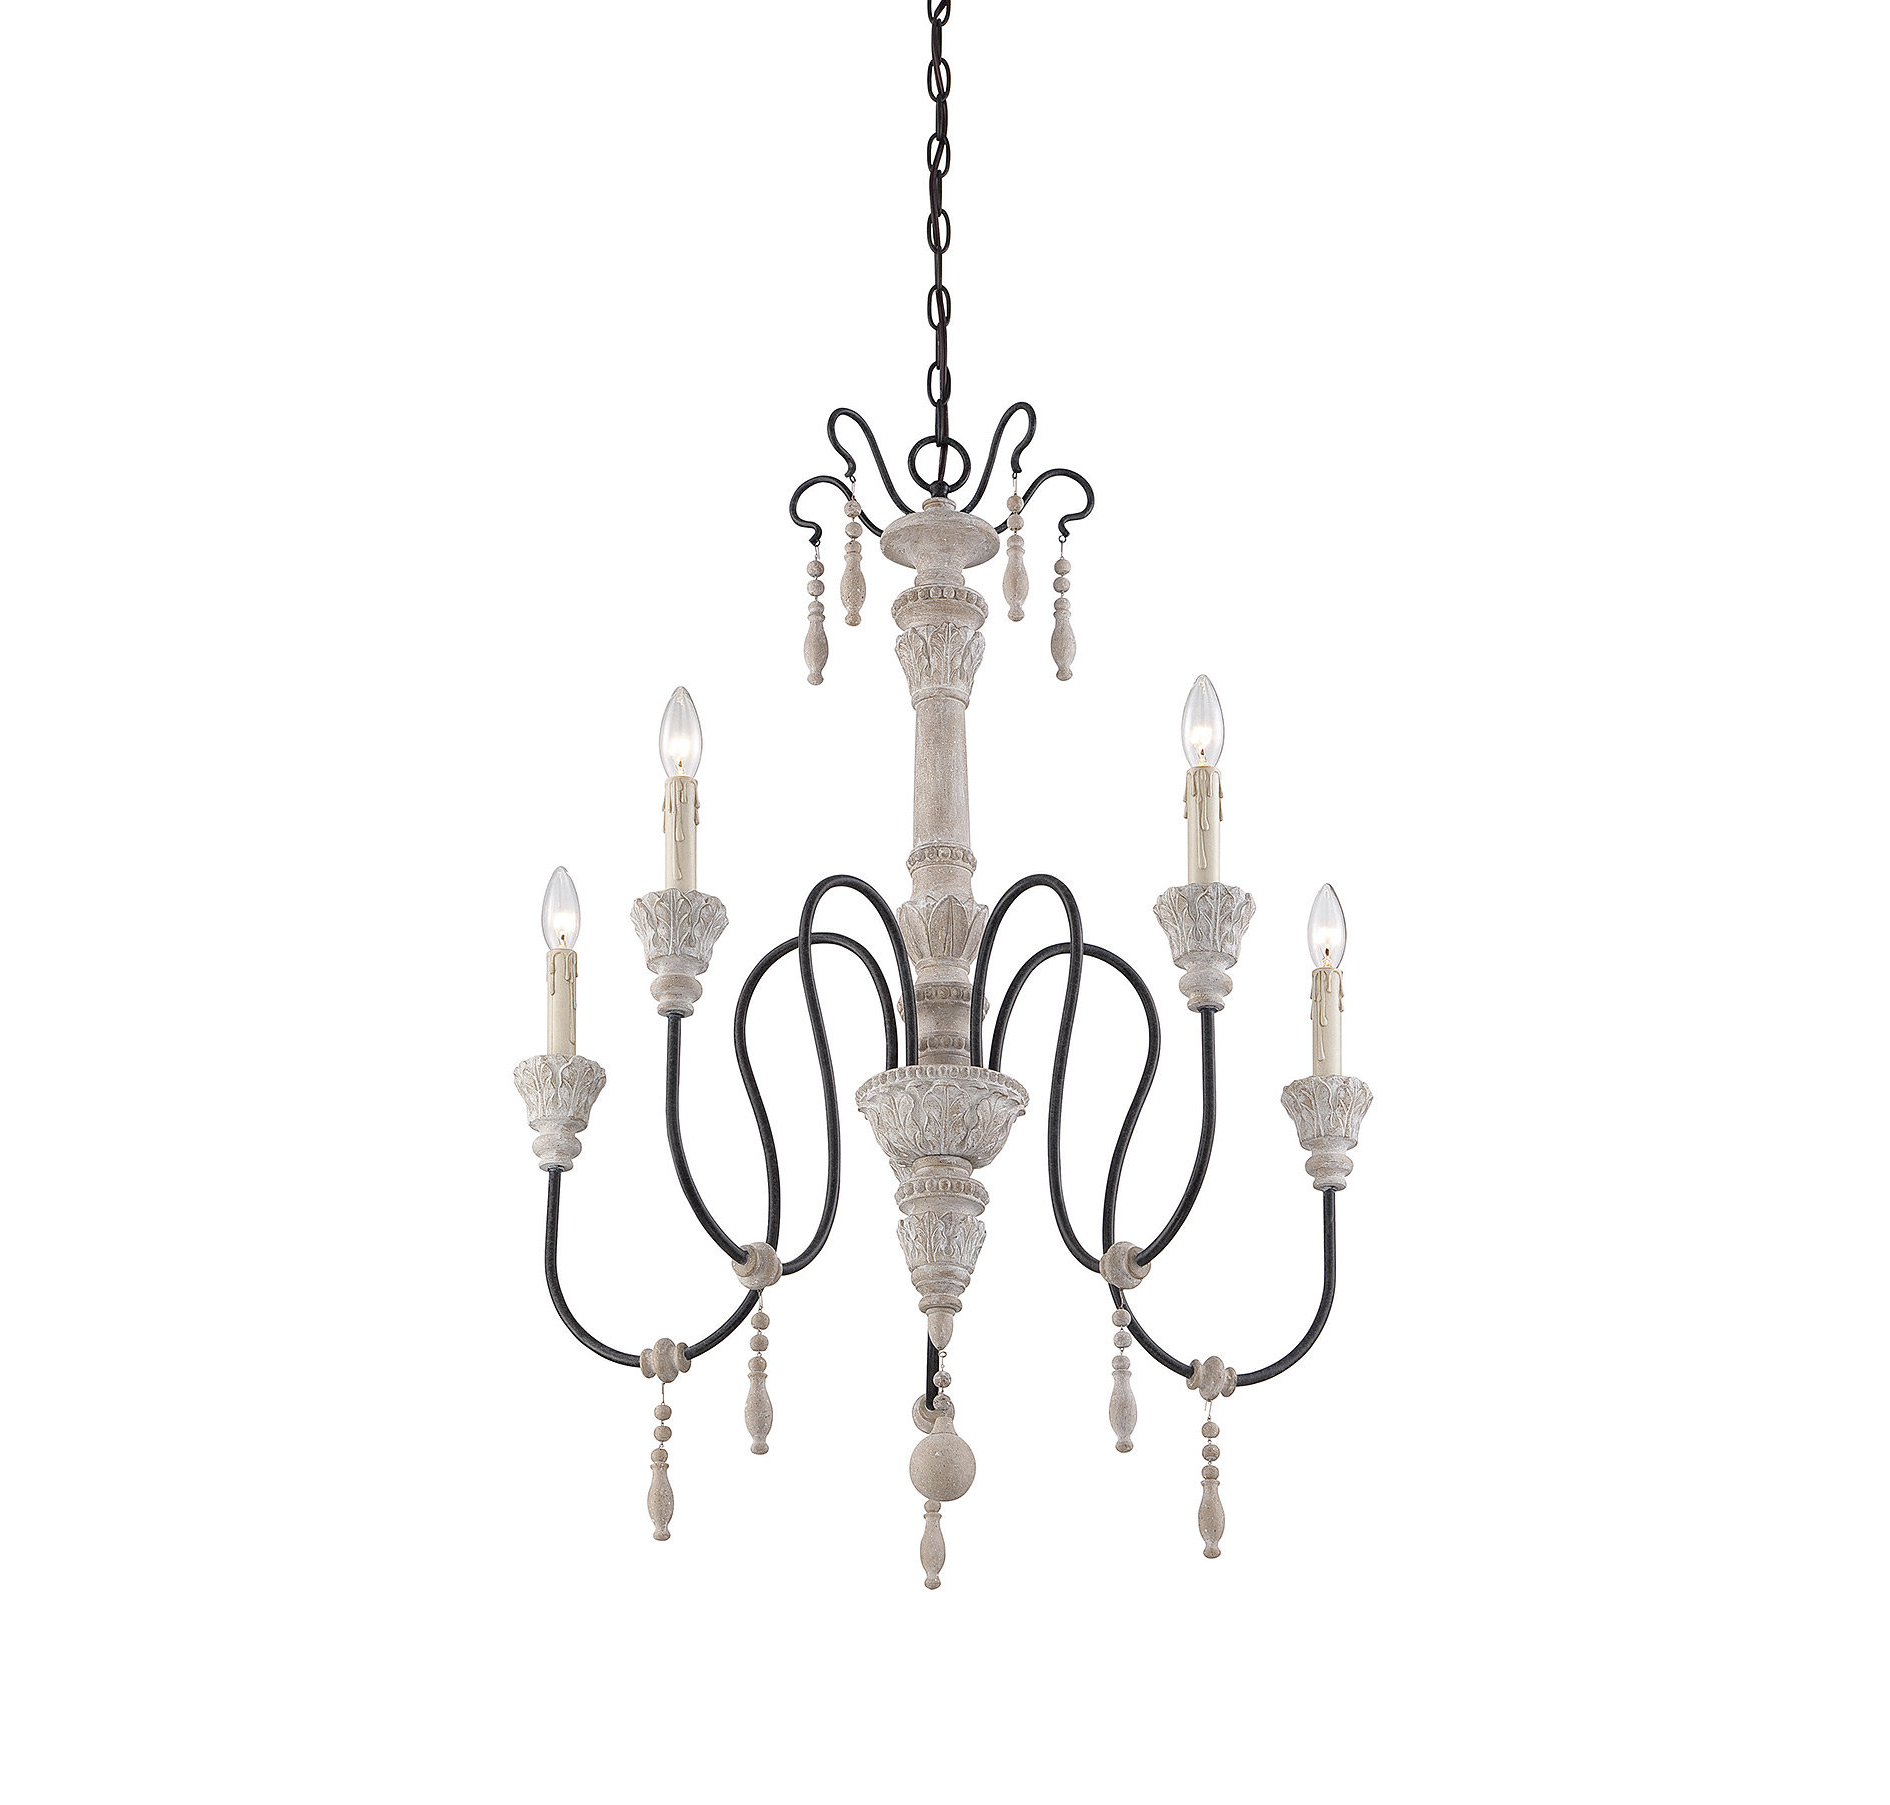 Corneau 5 Light Chandelier Pertaining To Trendy Armande Candle Style Chandeliers (View 12 of 25)